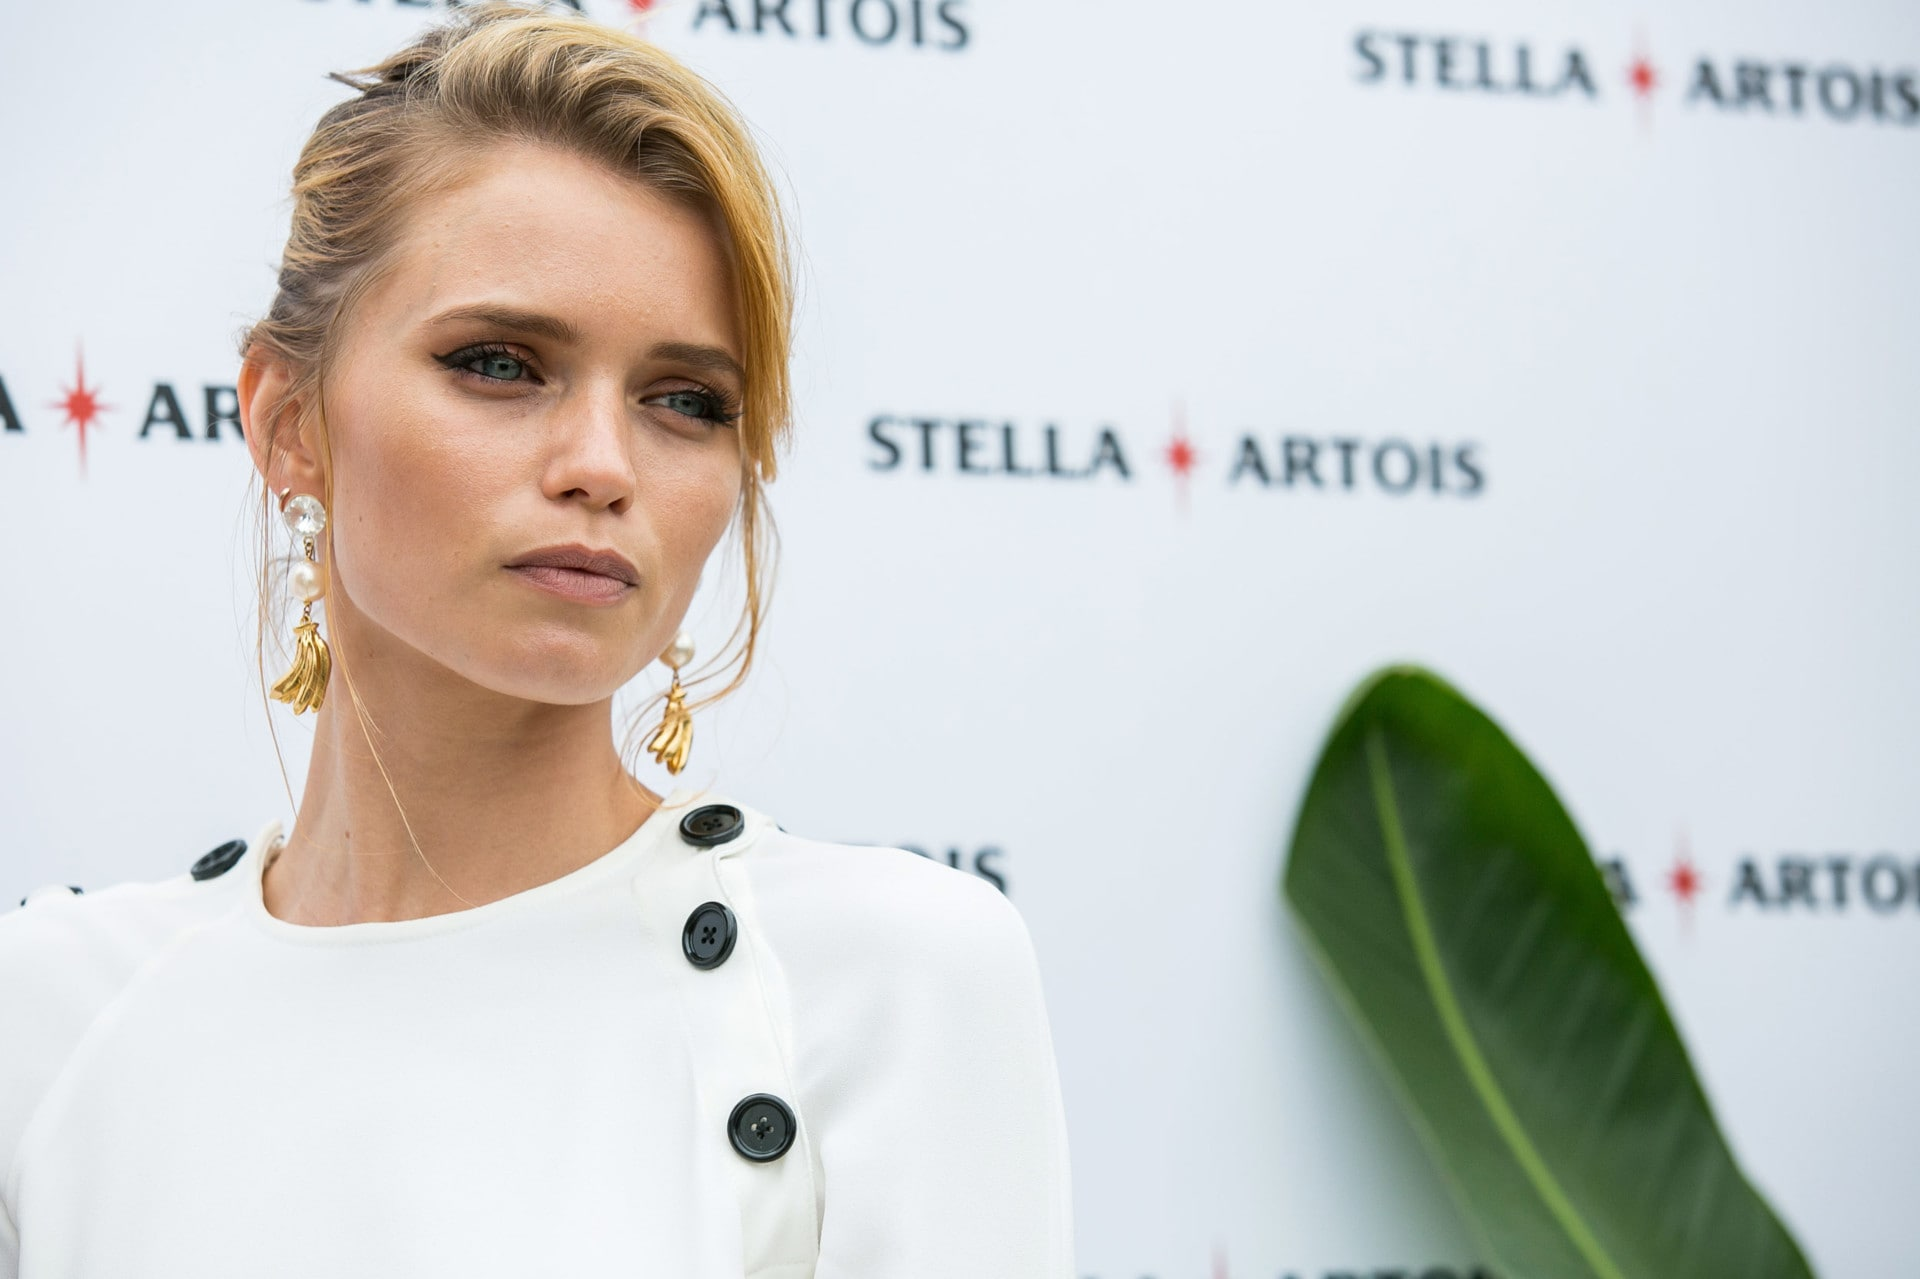 Abbey Lee on career moves and how modelling prepared her for the acting world